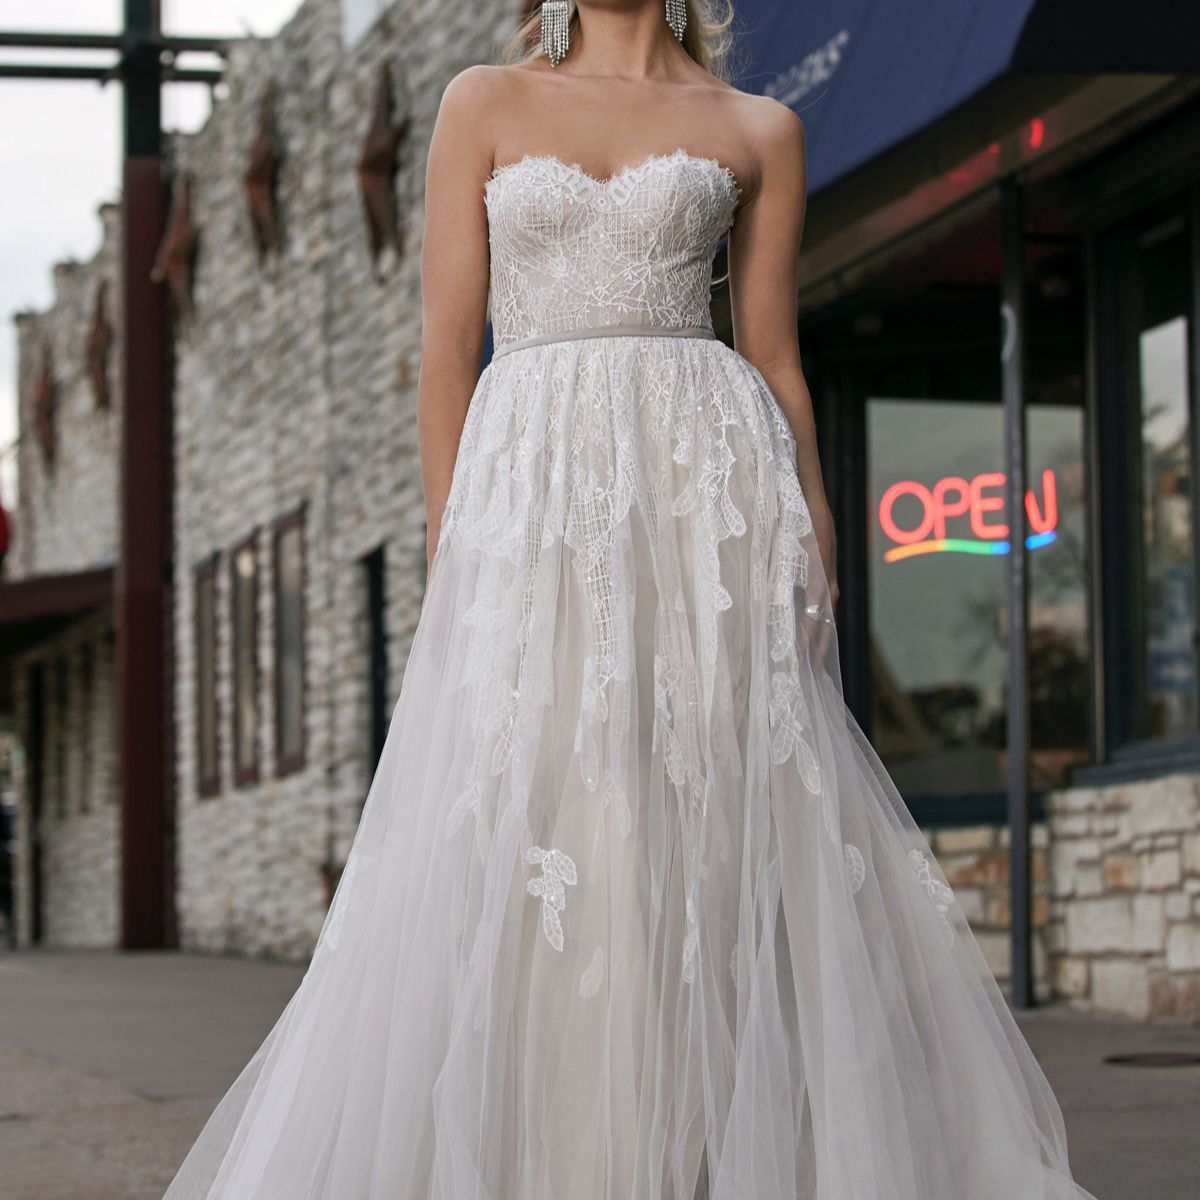 Model in strapless lacy sweetheart ballgown